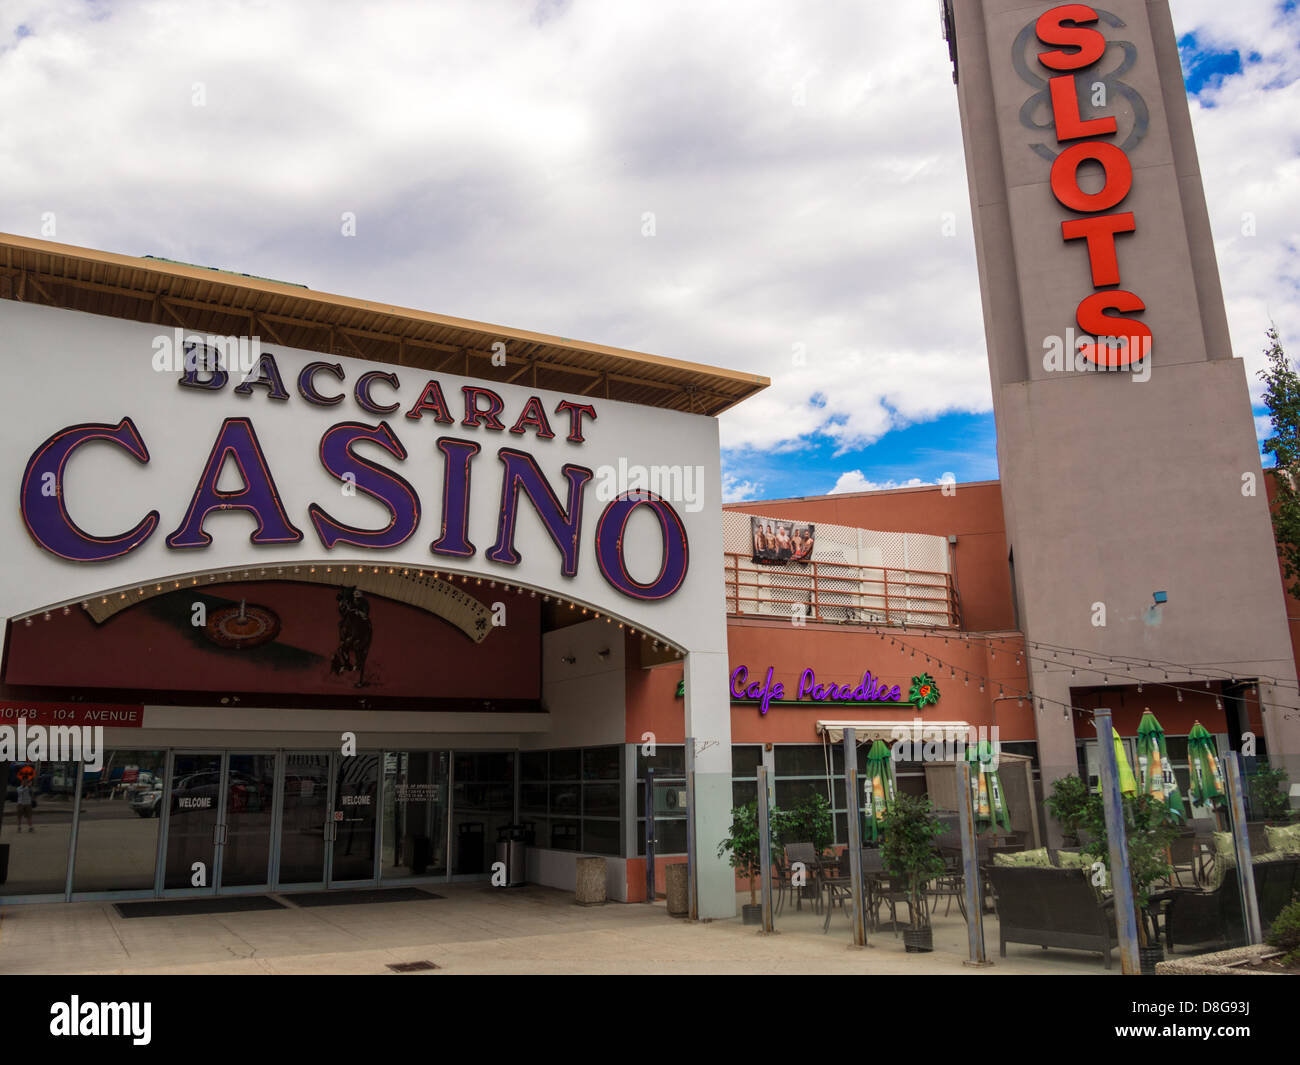 Downtown Baccarat Casino in Edmonton, possible future home of new hockey arena. - Stock Image